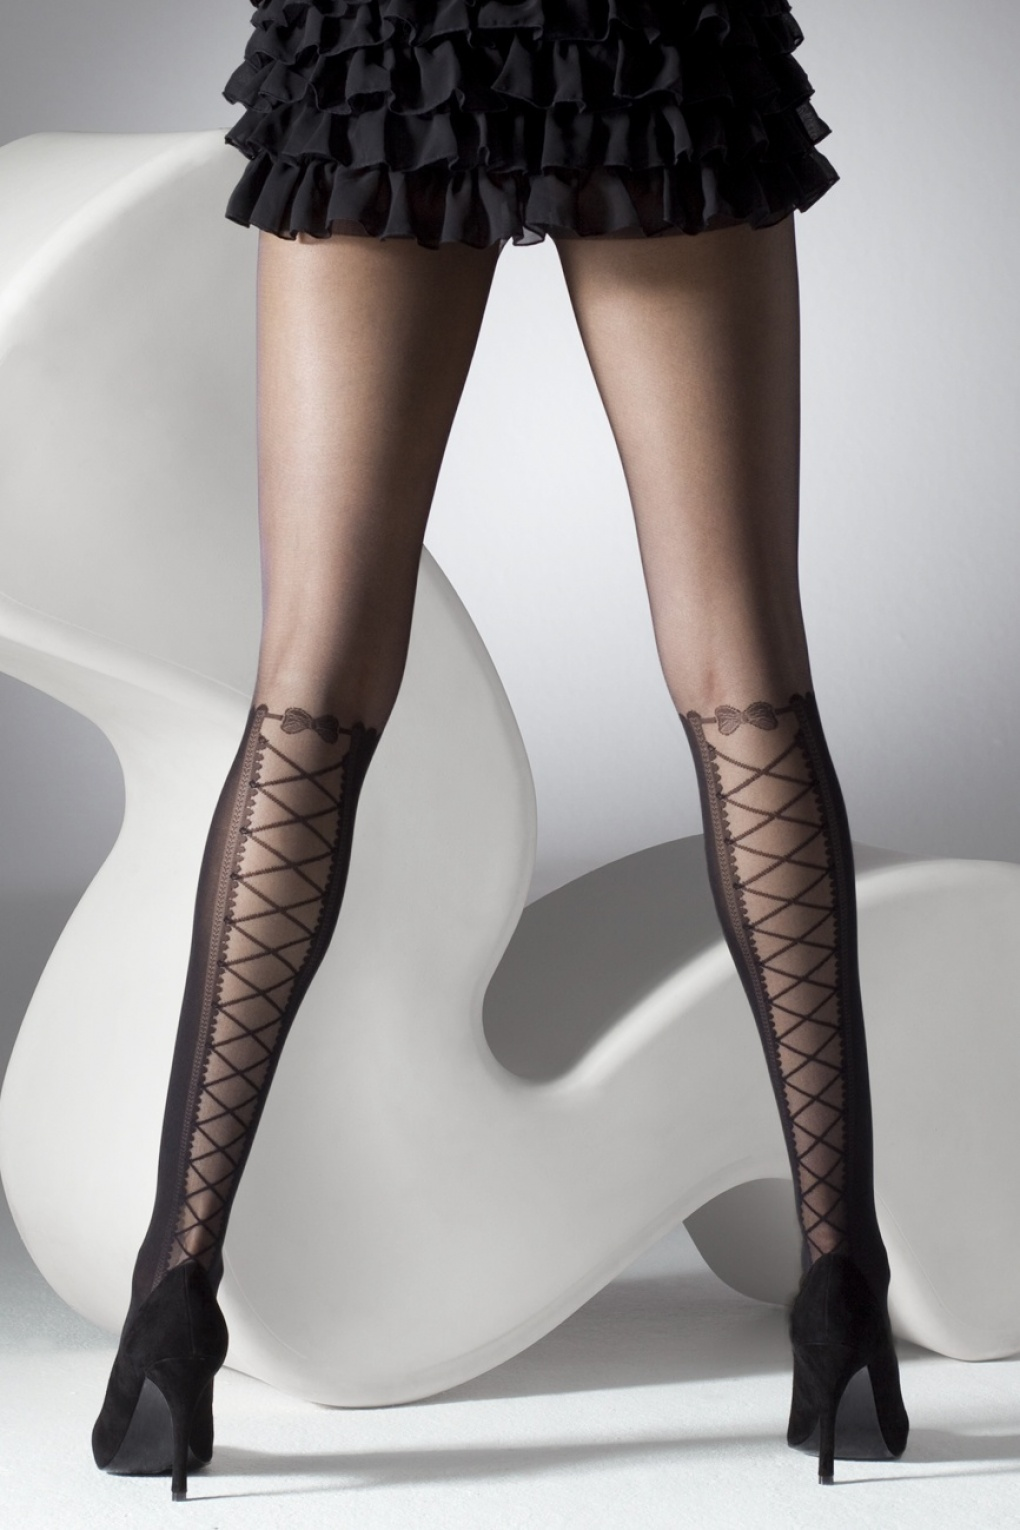 Seamed Stockings, Nylons, Tights 50s Lace-Up Over The Knee Tights in Black £8.71 AT vintagedancer.com